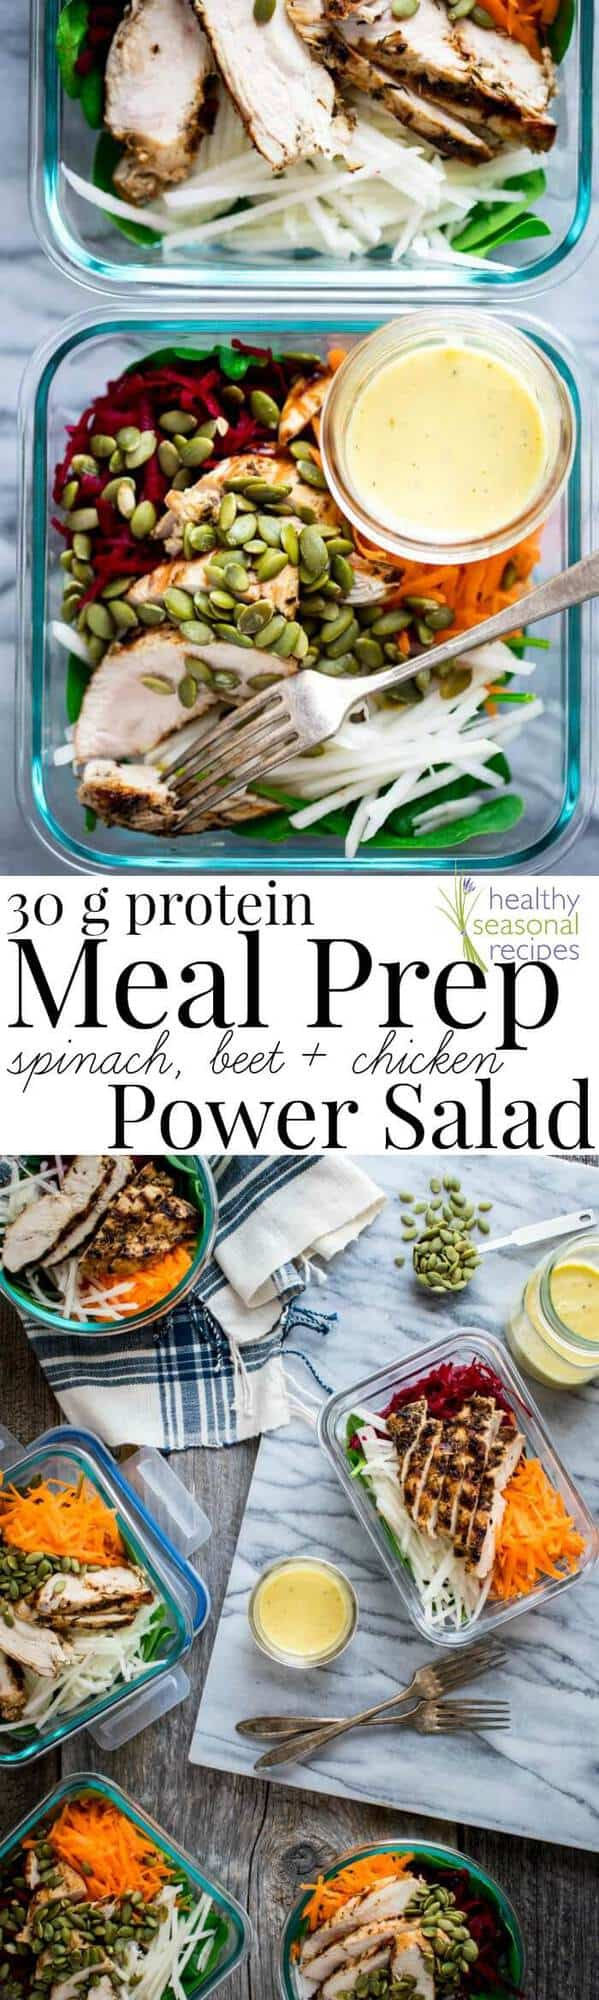 meal prep salads in glass storage containers with text